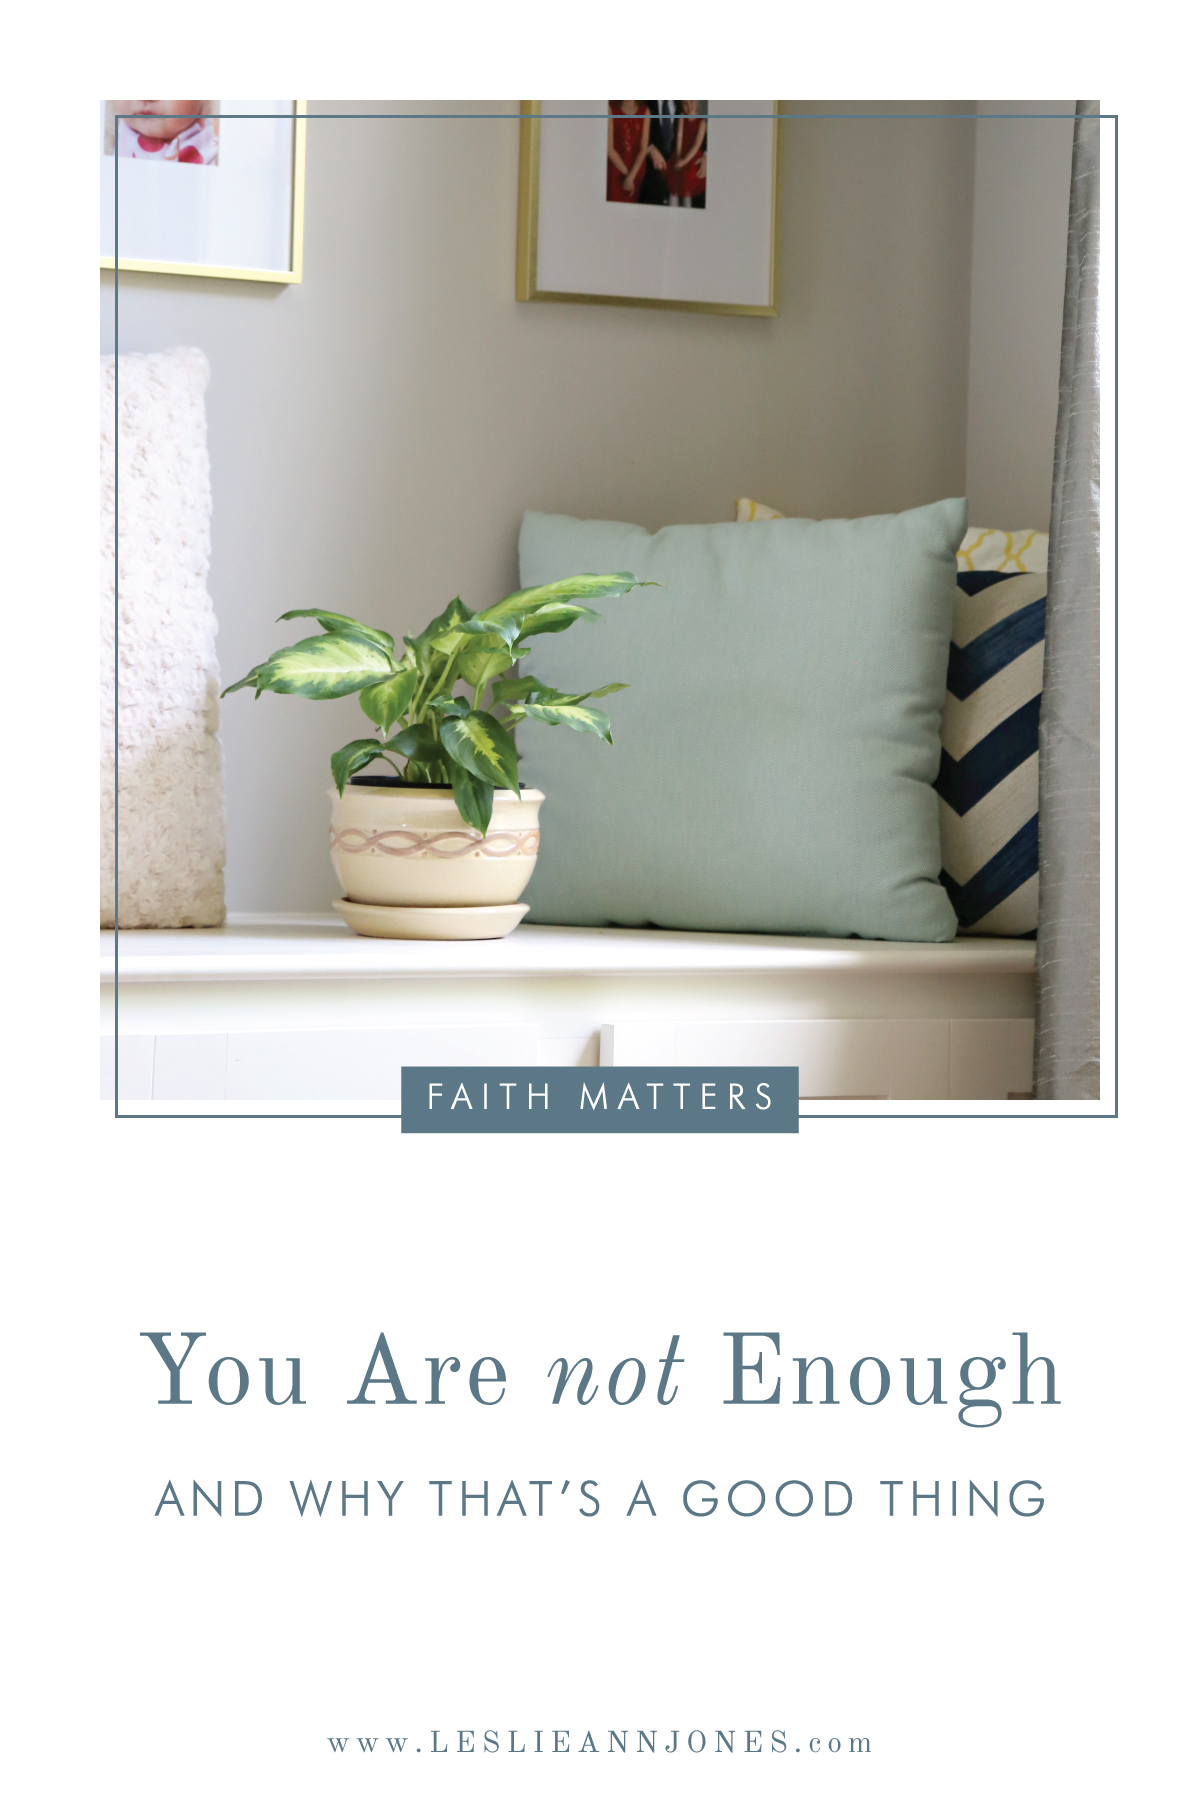 When You Don't Feel Like You're Enough - And Why That's a Good Thing